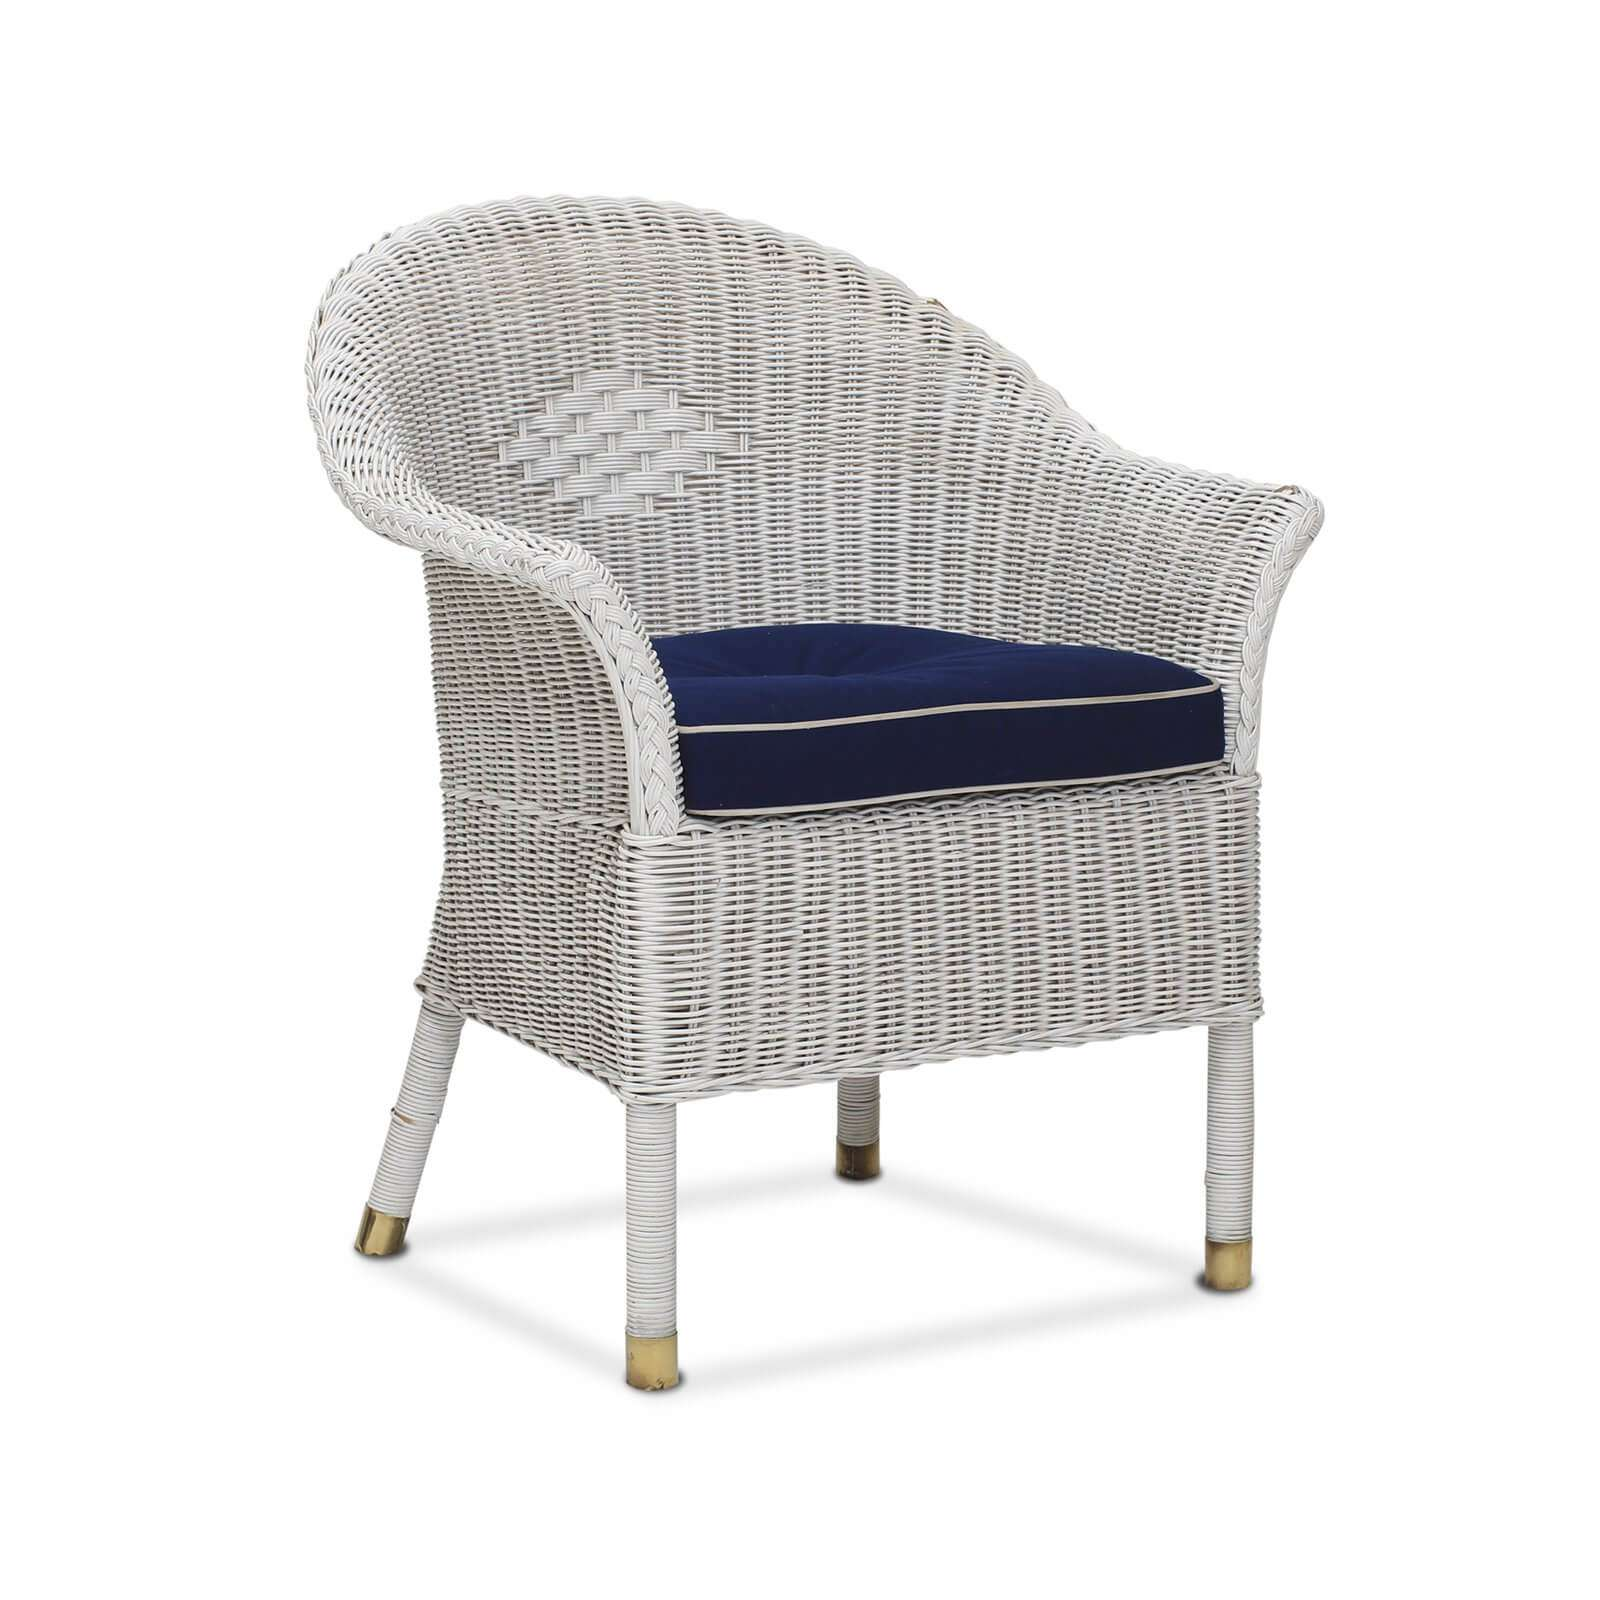 CALYPSO DINING CHAIR - STUART MEMBERY HOME COLLECTION